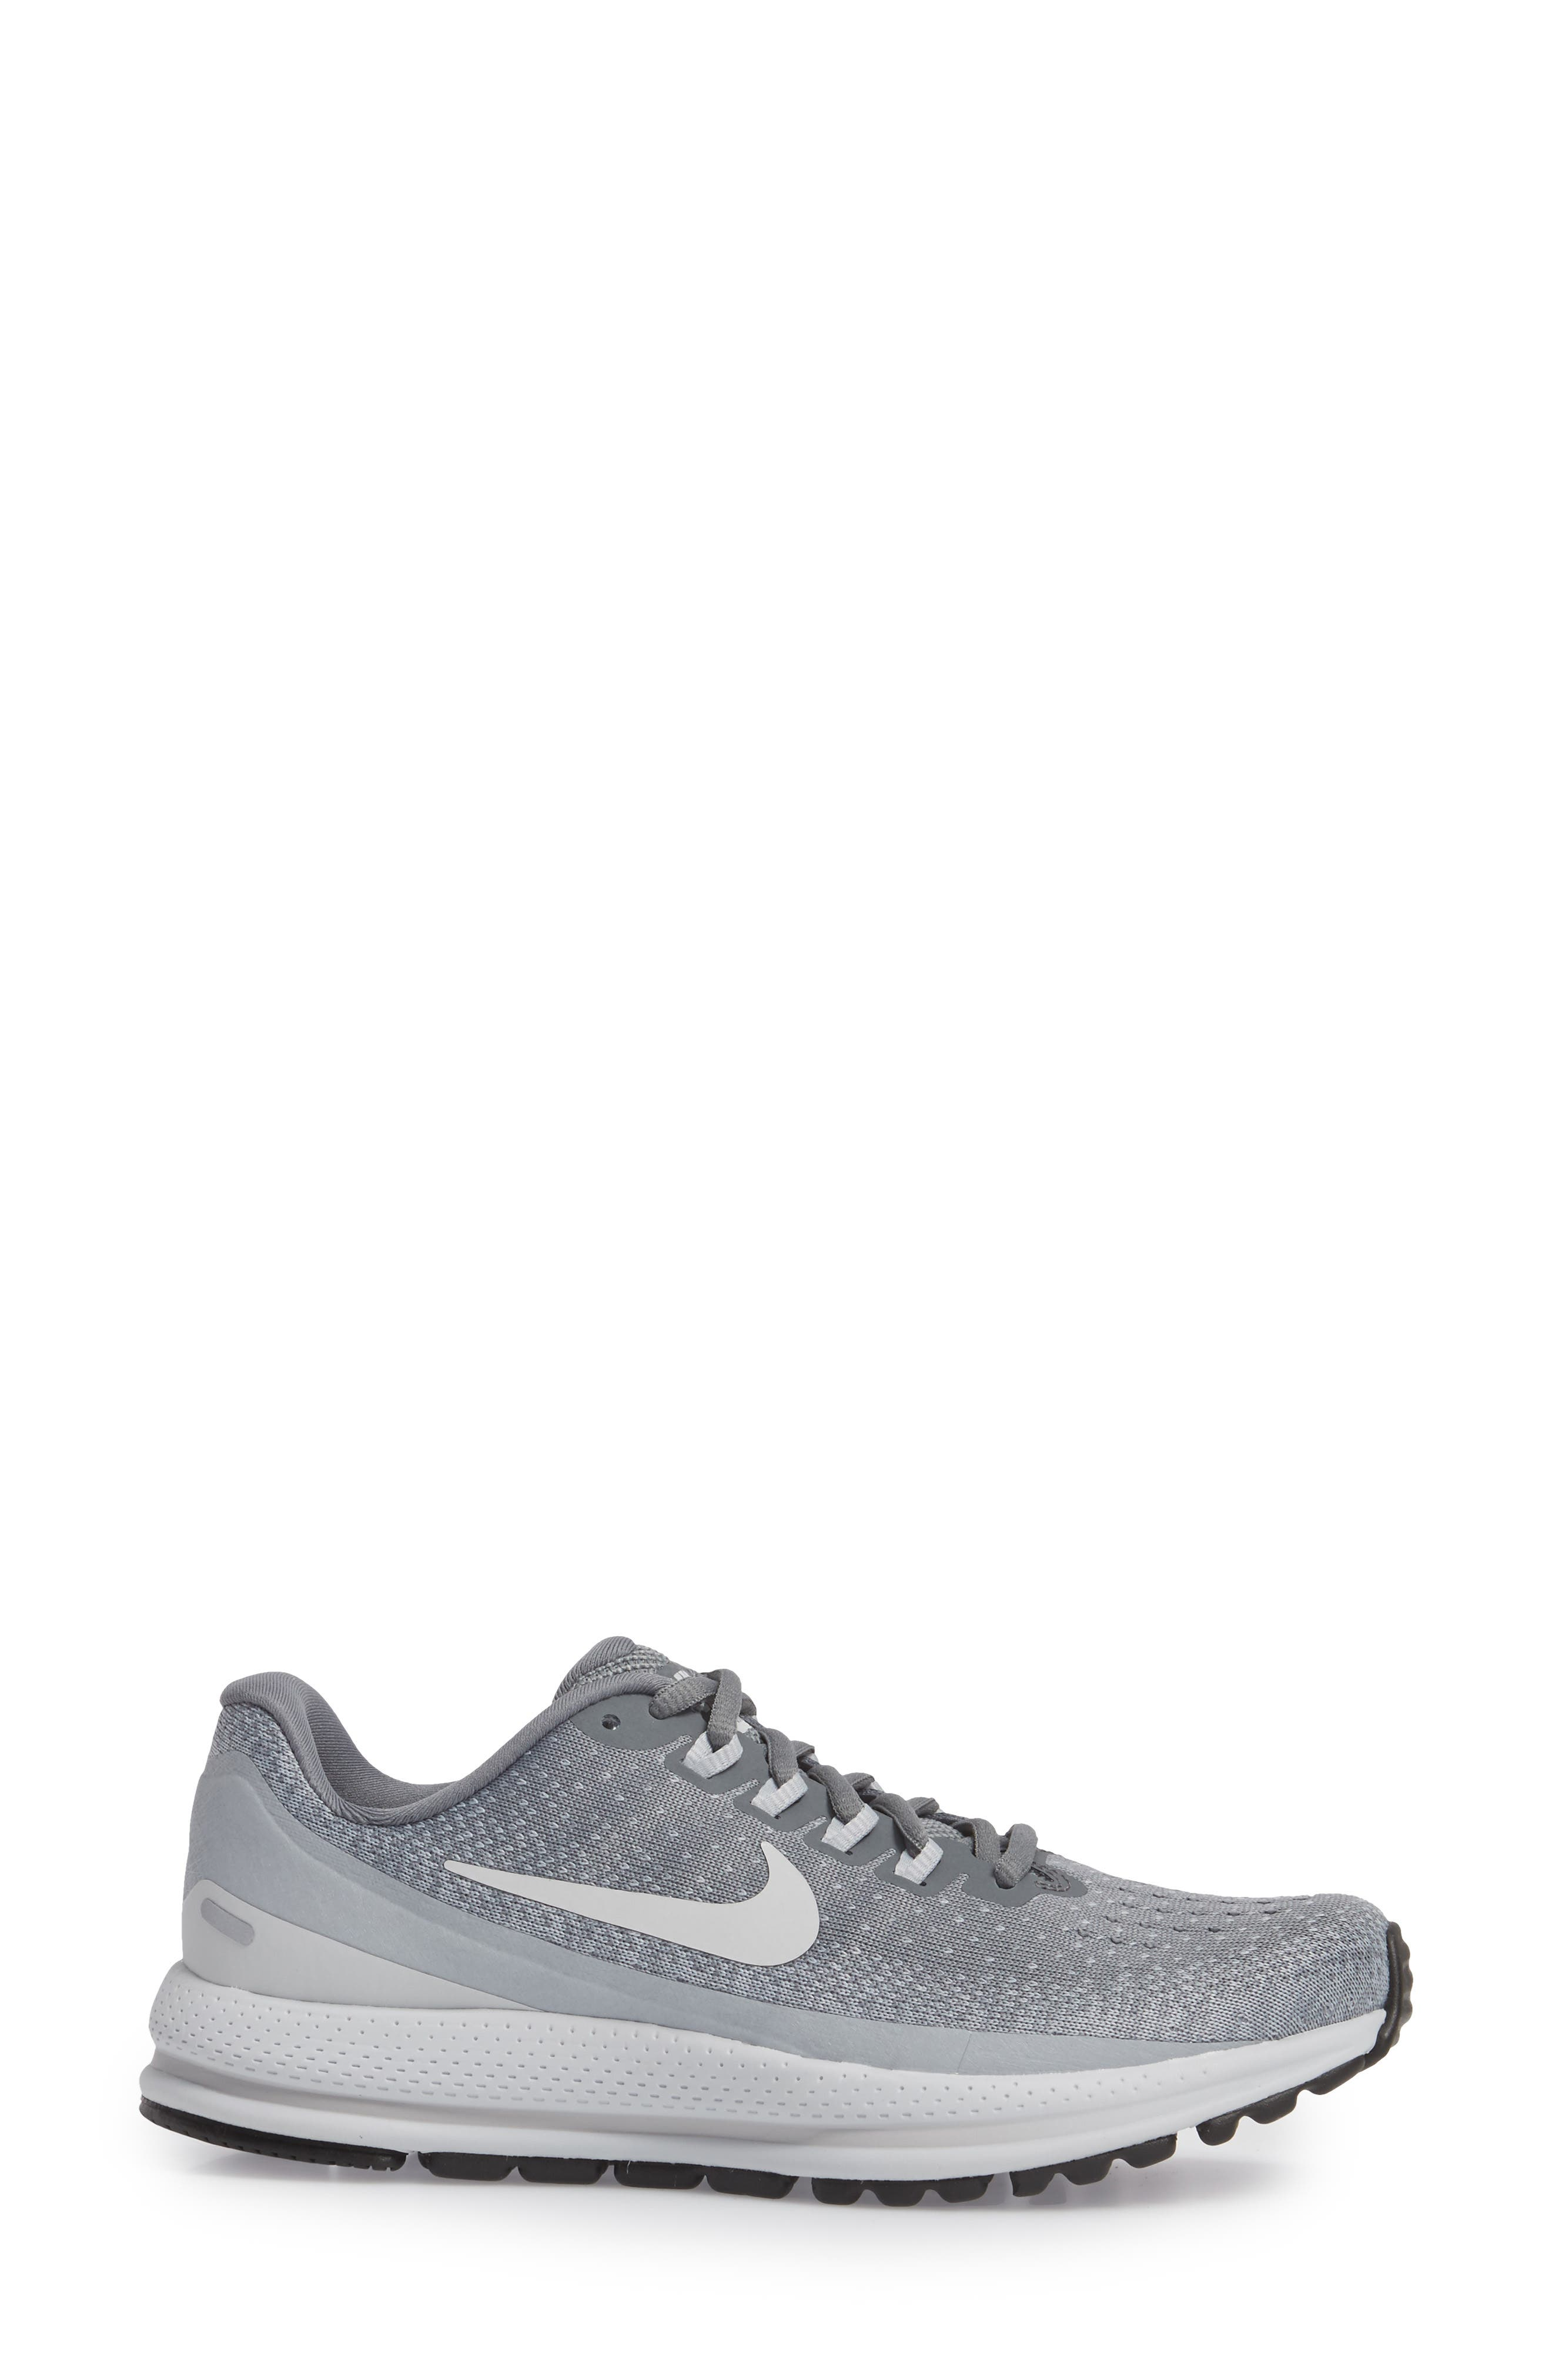 Air Zoom Vomero 13 Running Shoe,                             Alternate thumbnail 3, color,                             023